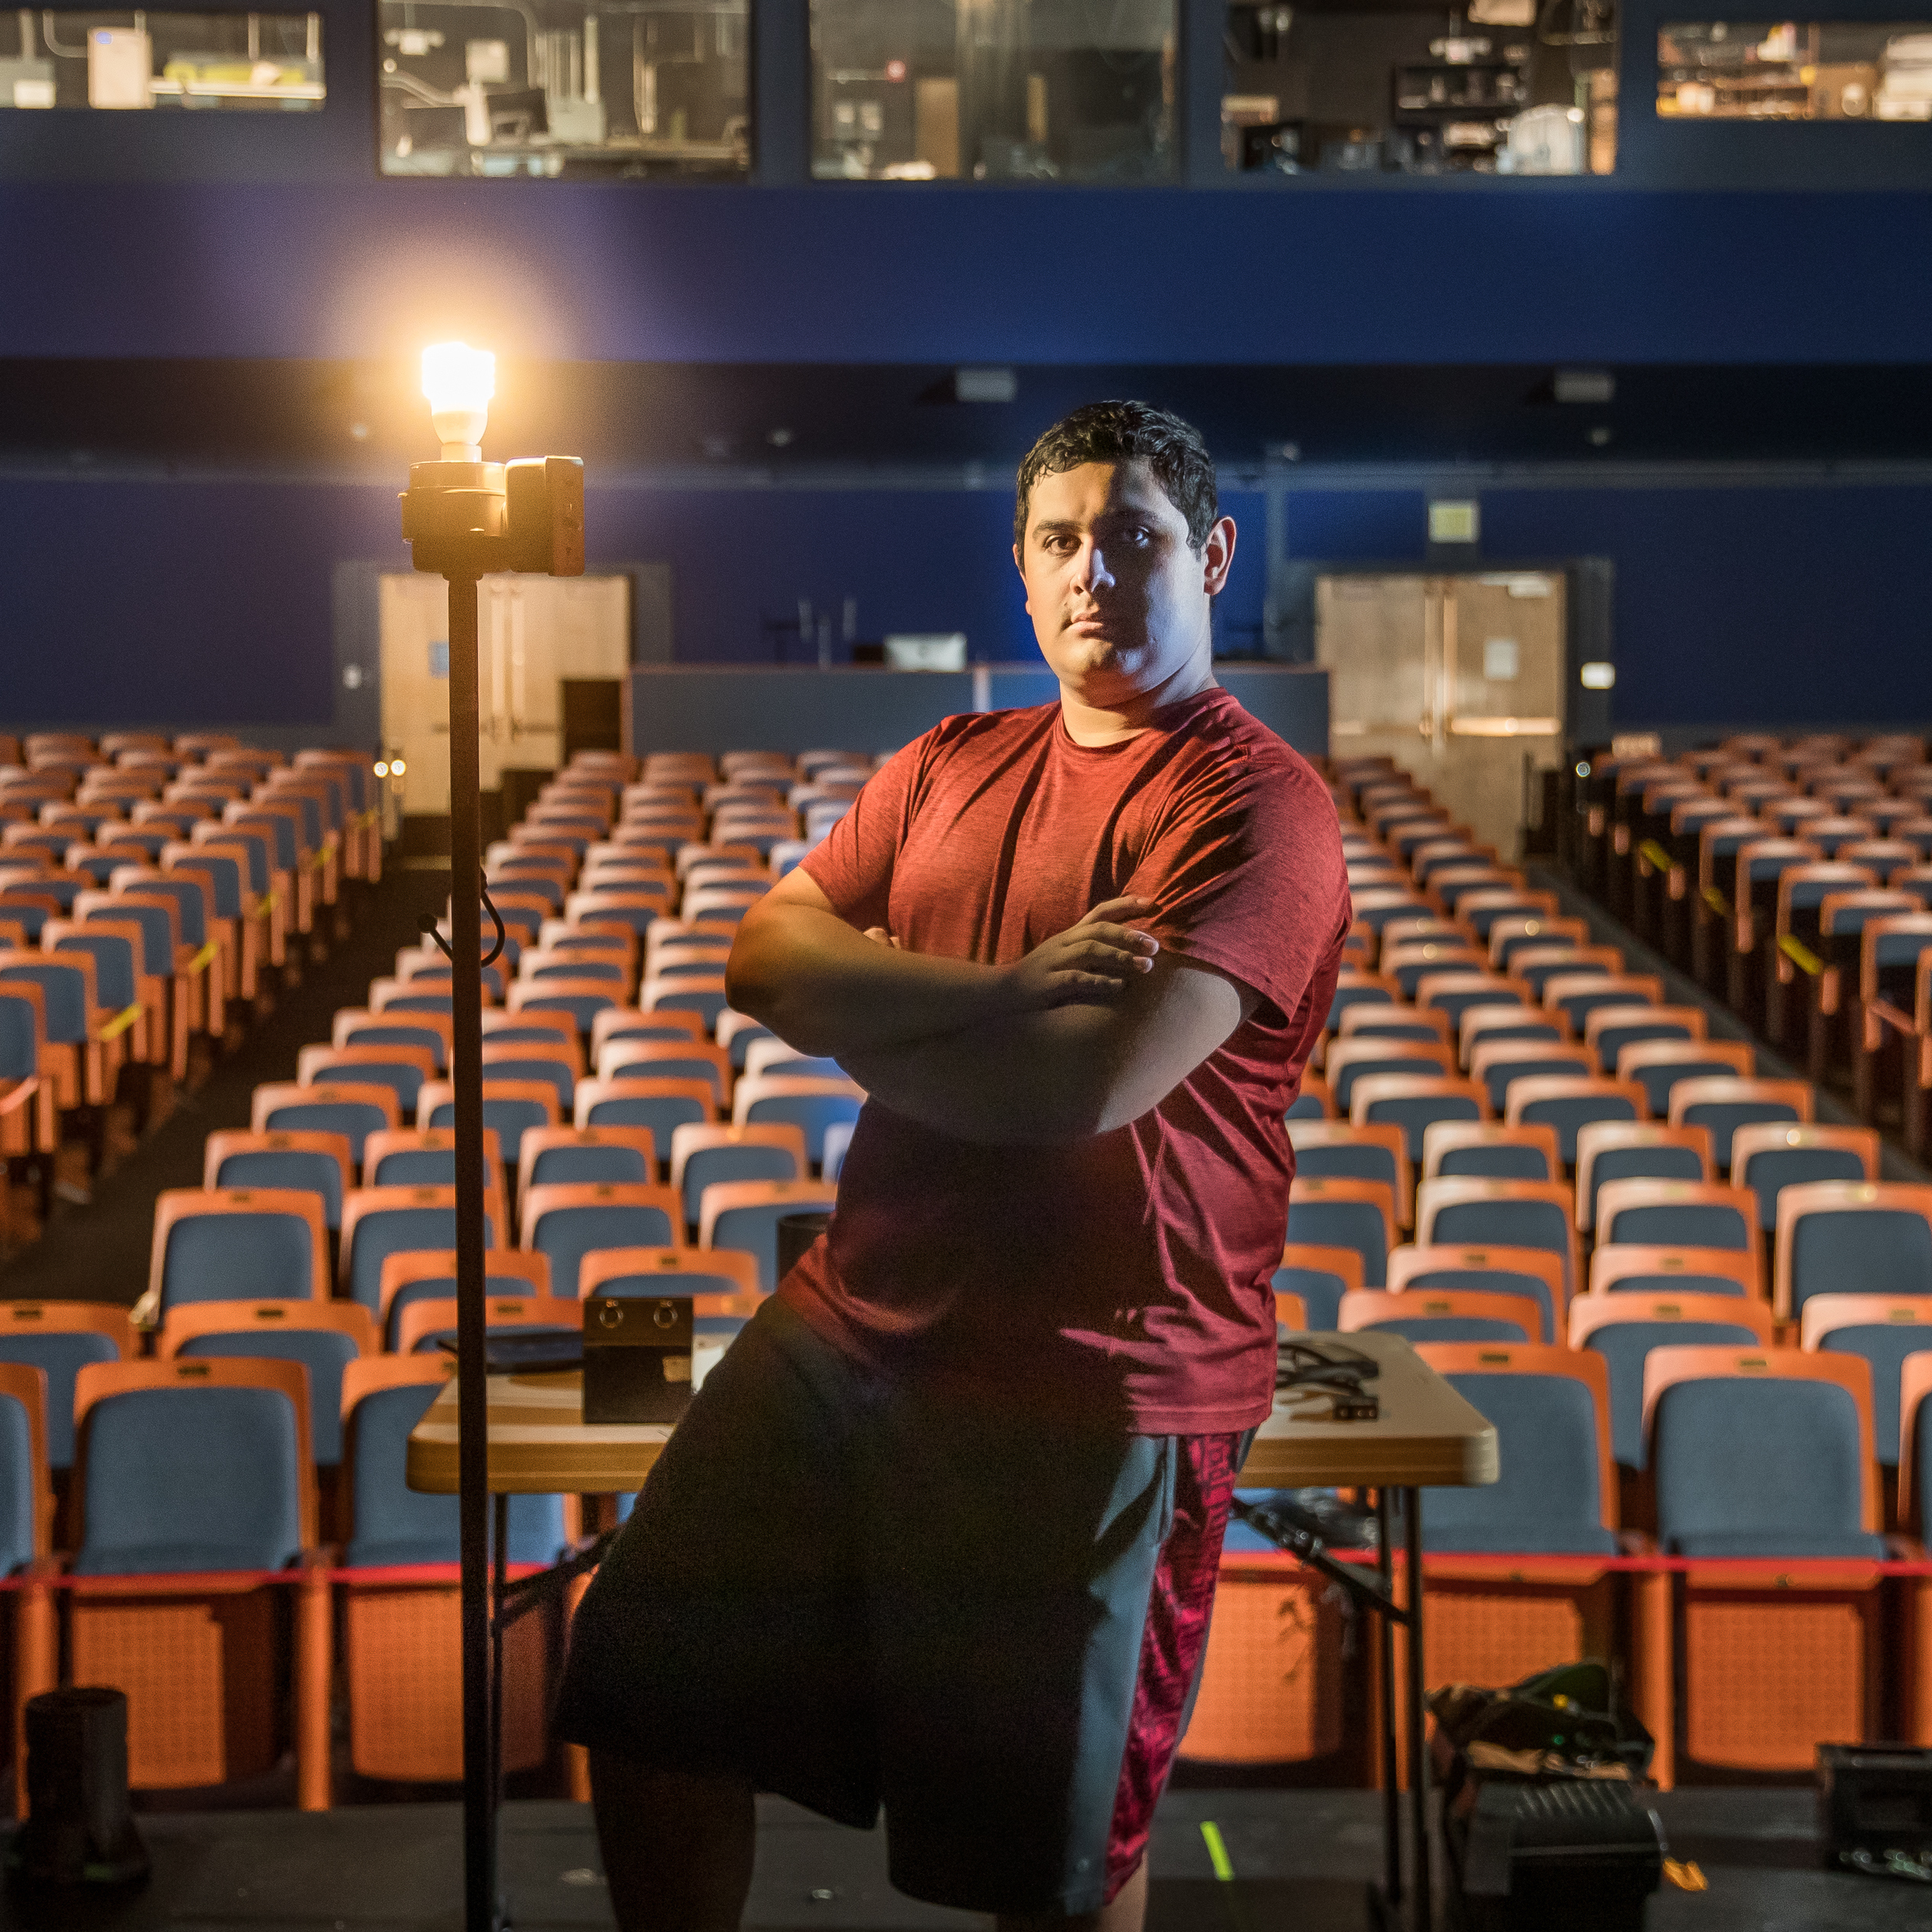 Theatre student Arteaga stands on stage before empty theater